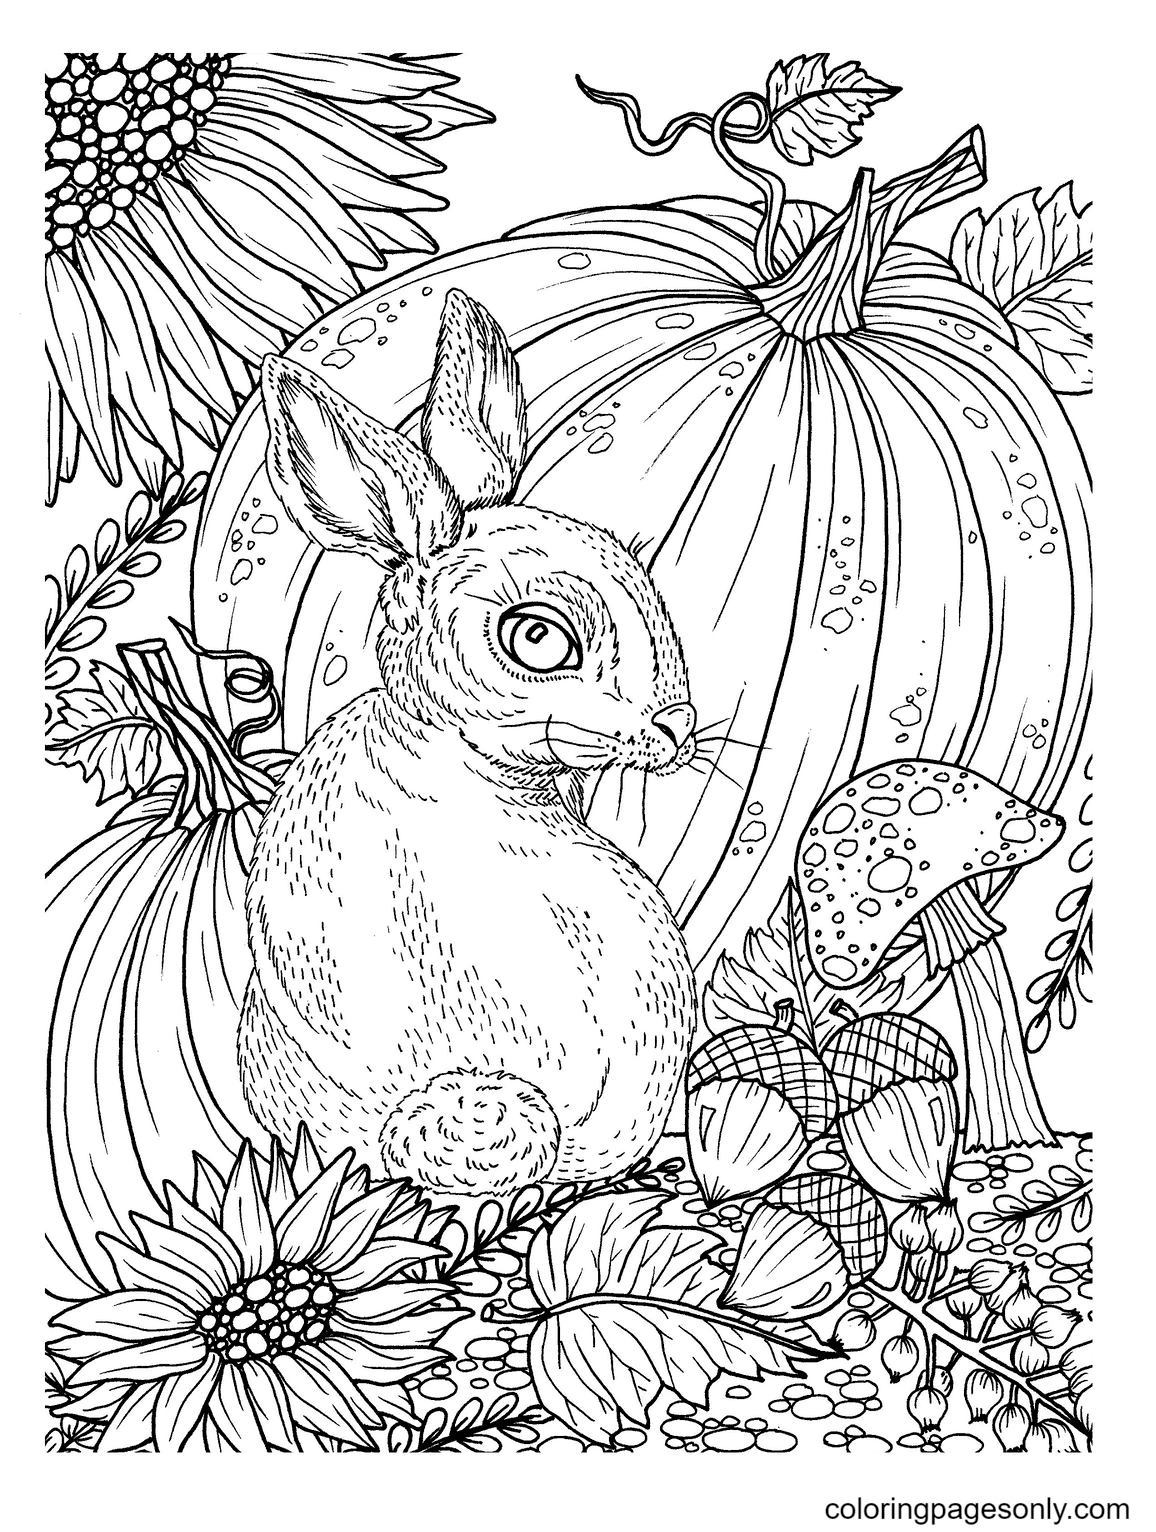 Bunny and Pumpkin Coloring Page